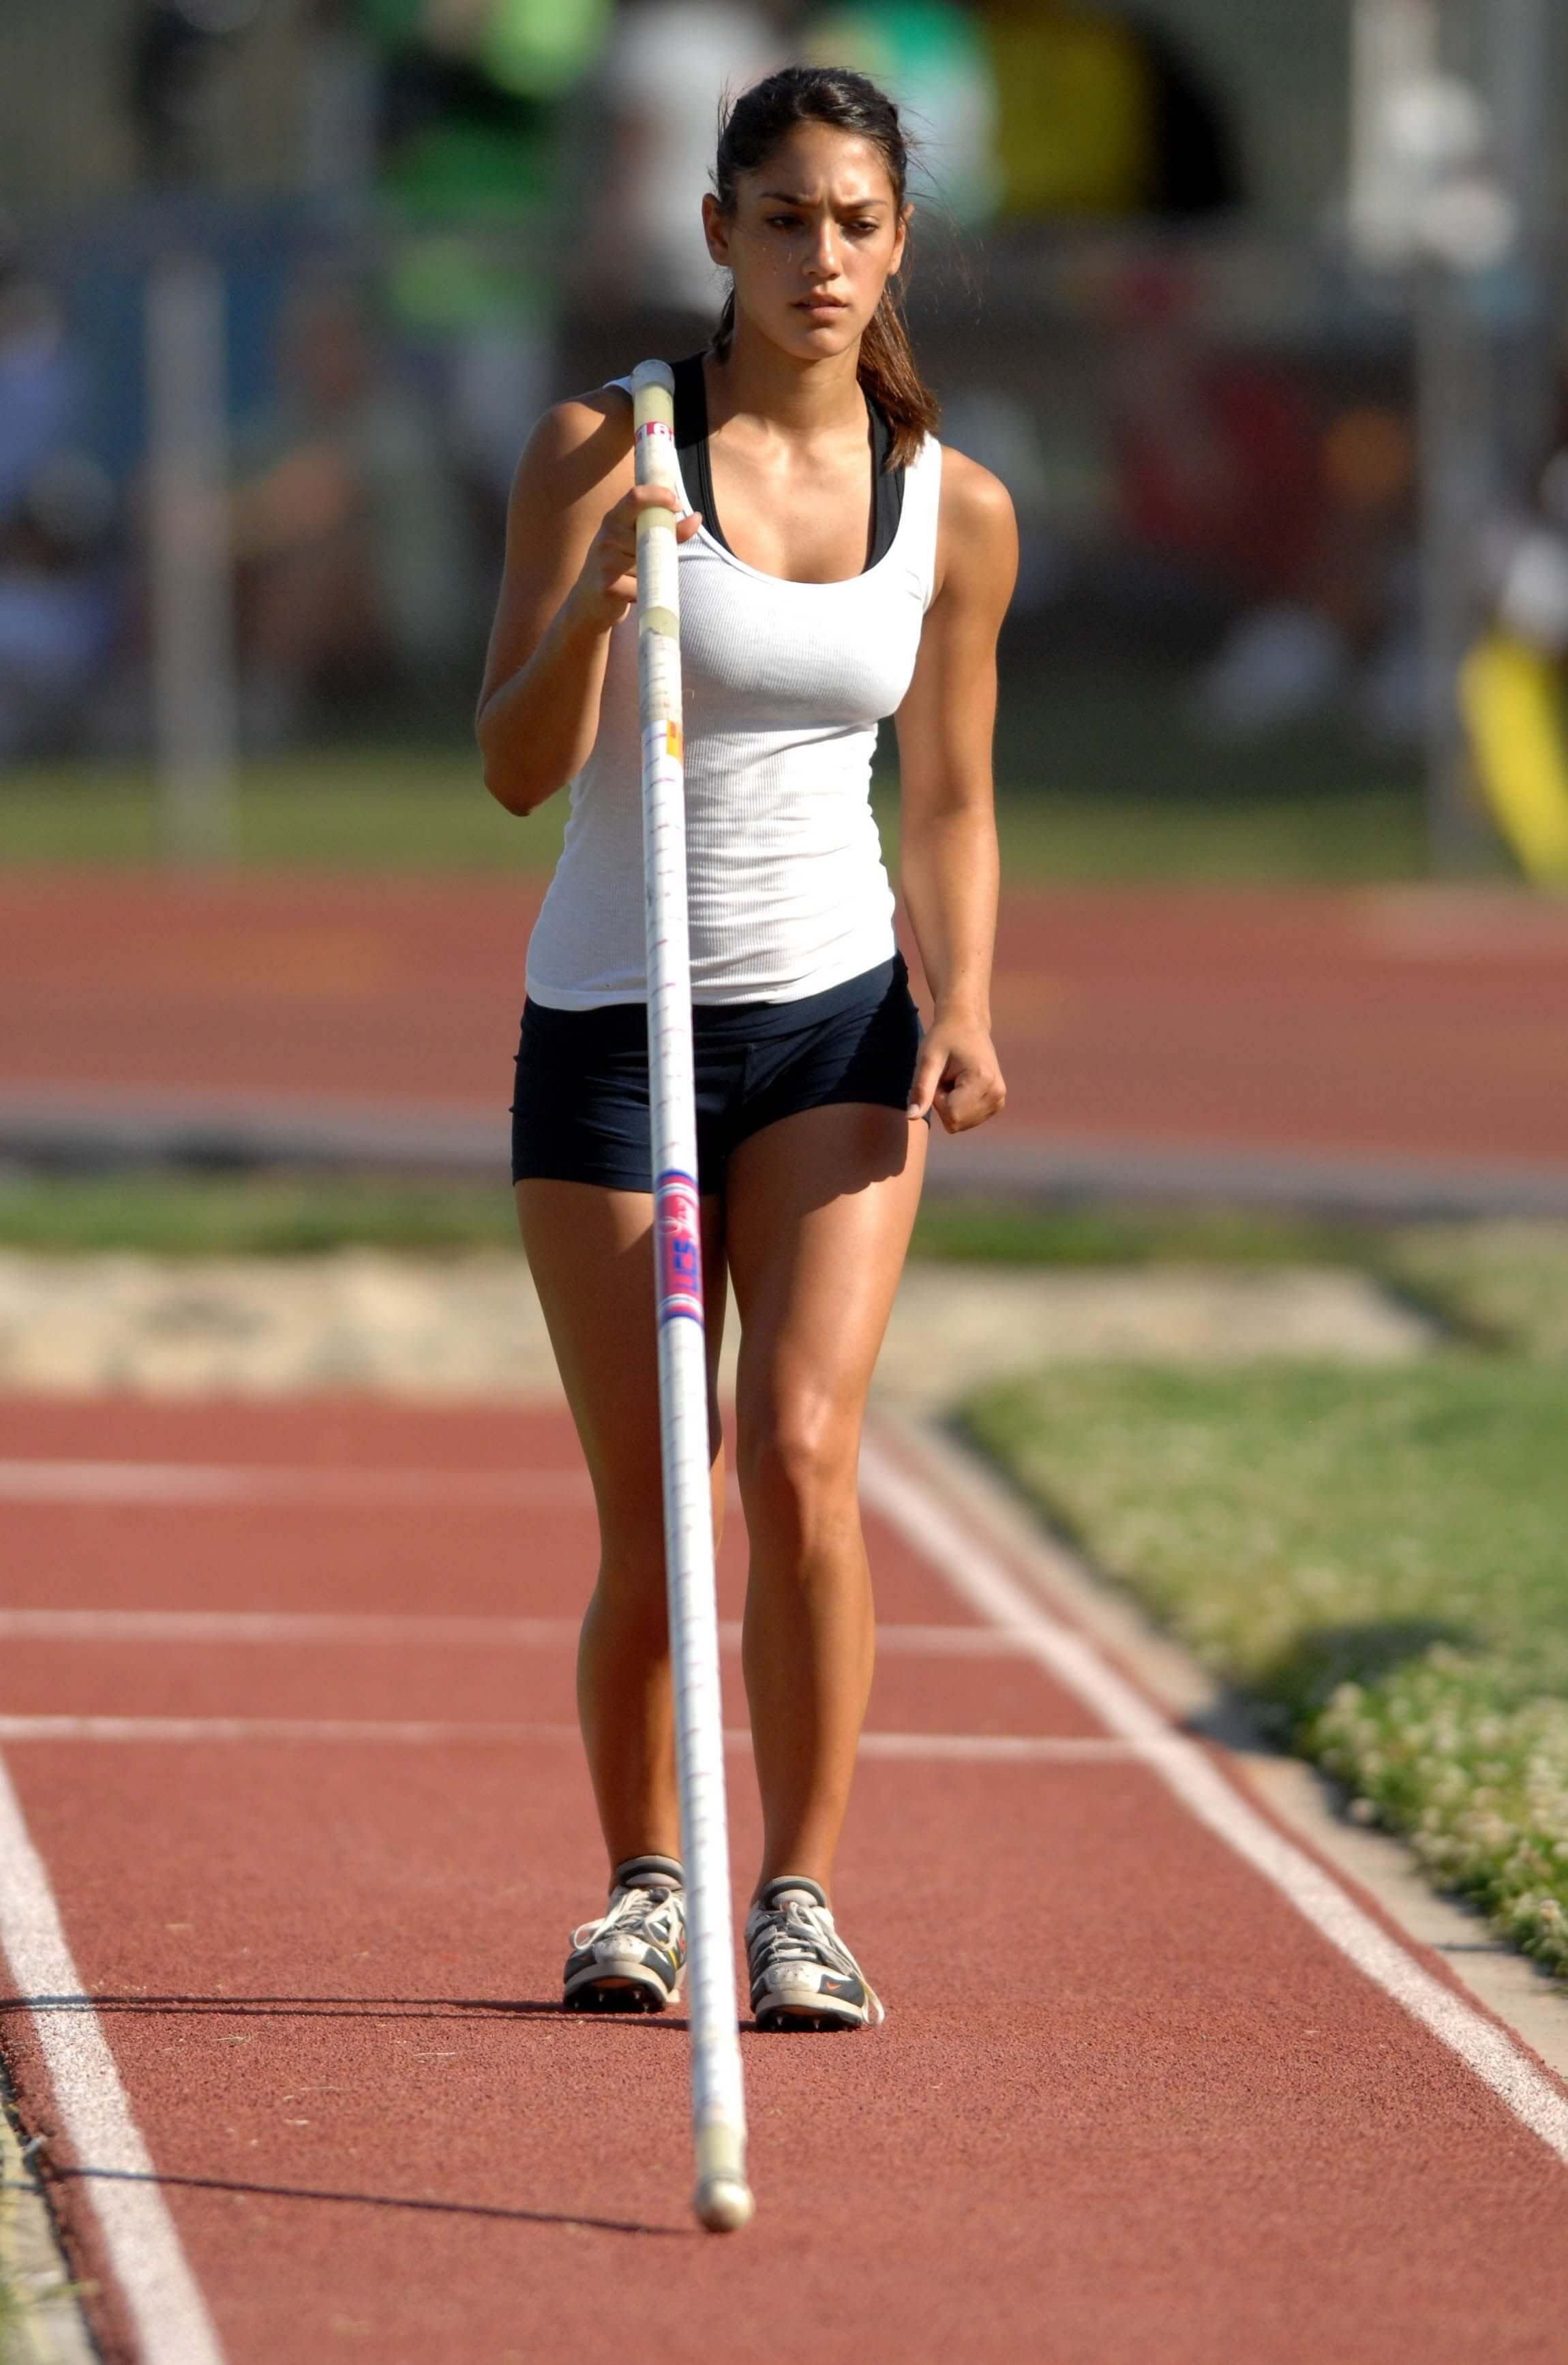 Allison Stokke hot athlete